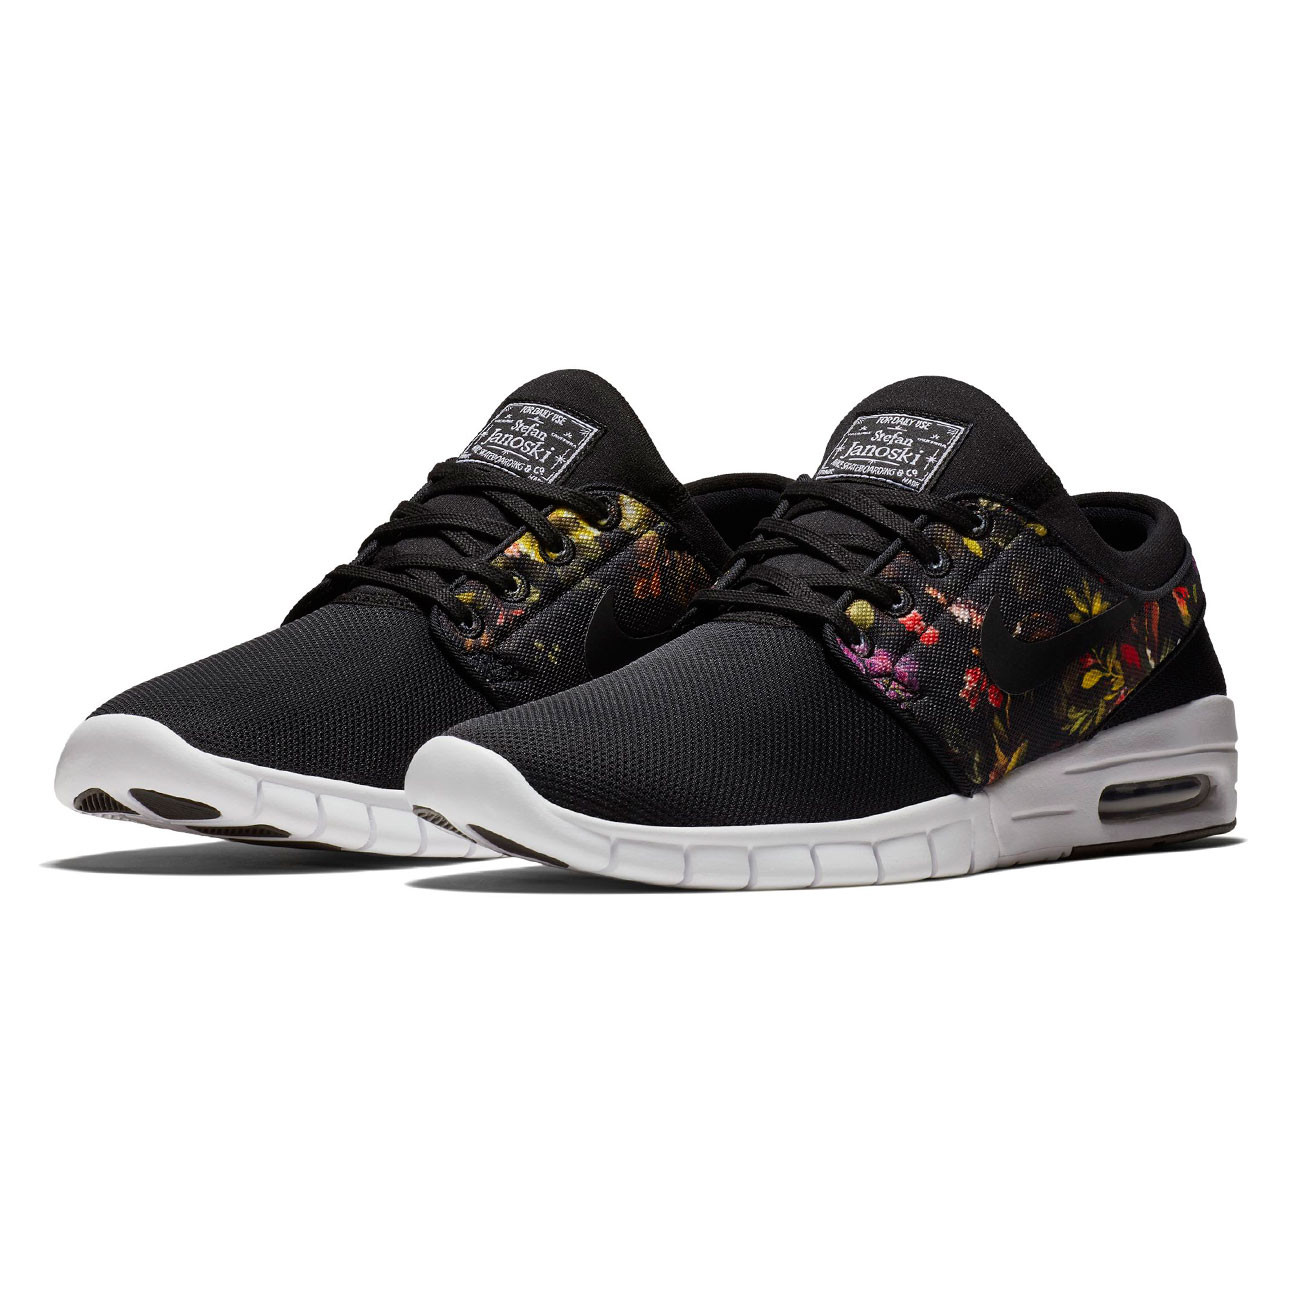 sneakers nike sb stefan janoski max black black multi. Black Bedroom Furniture Sets. Home Design Ideas